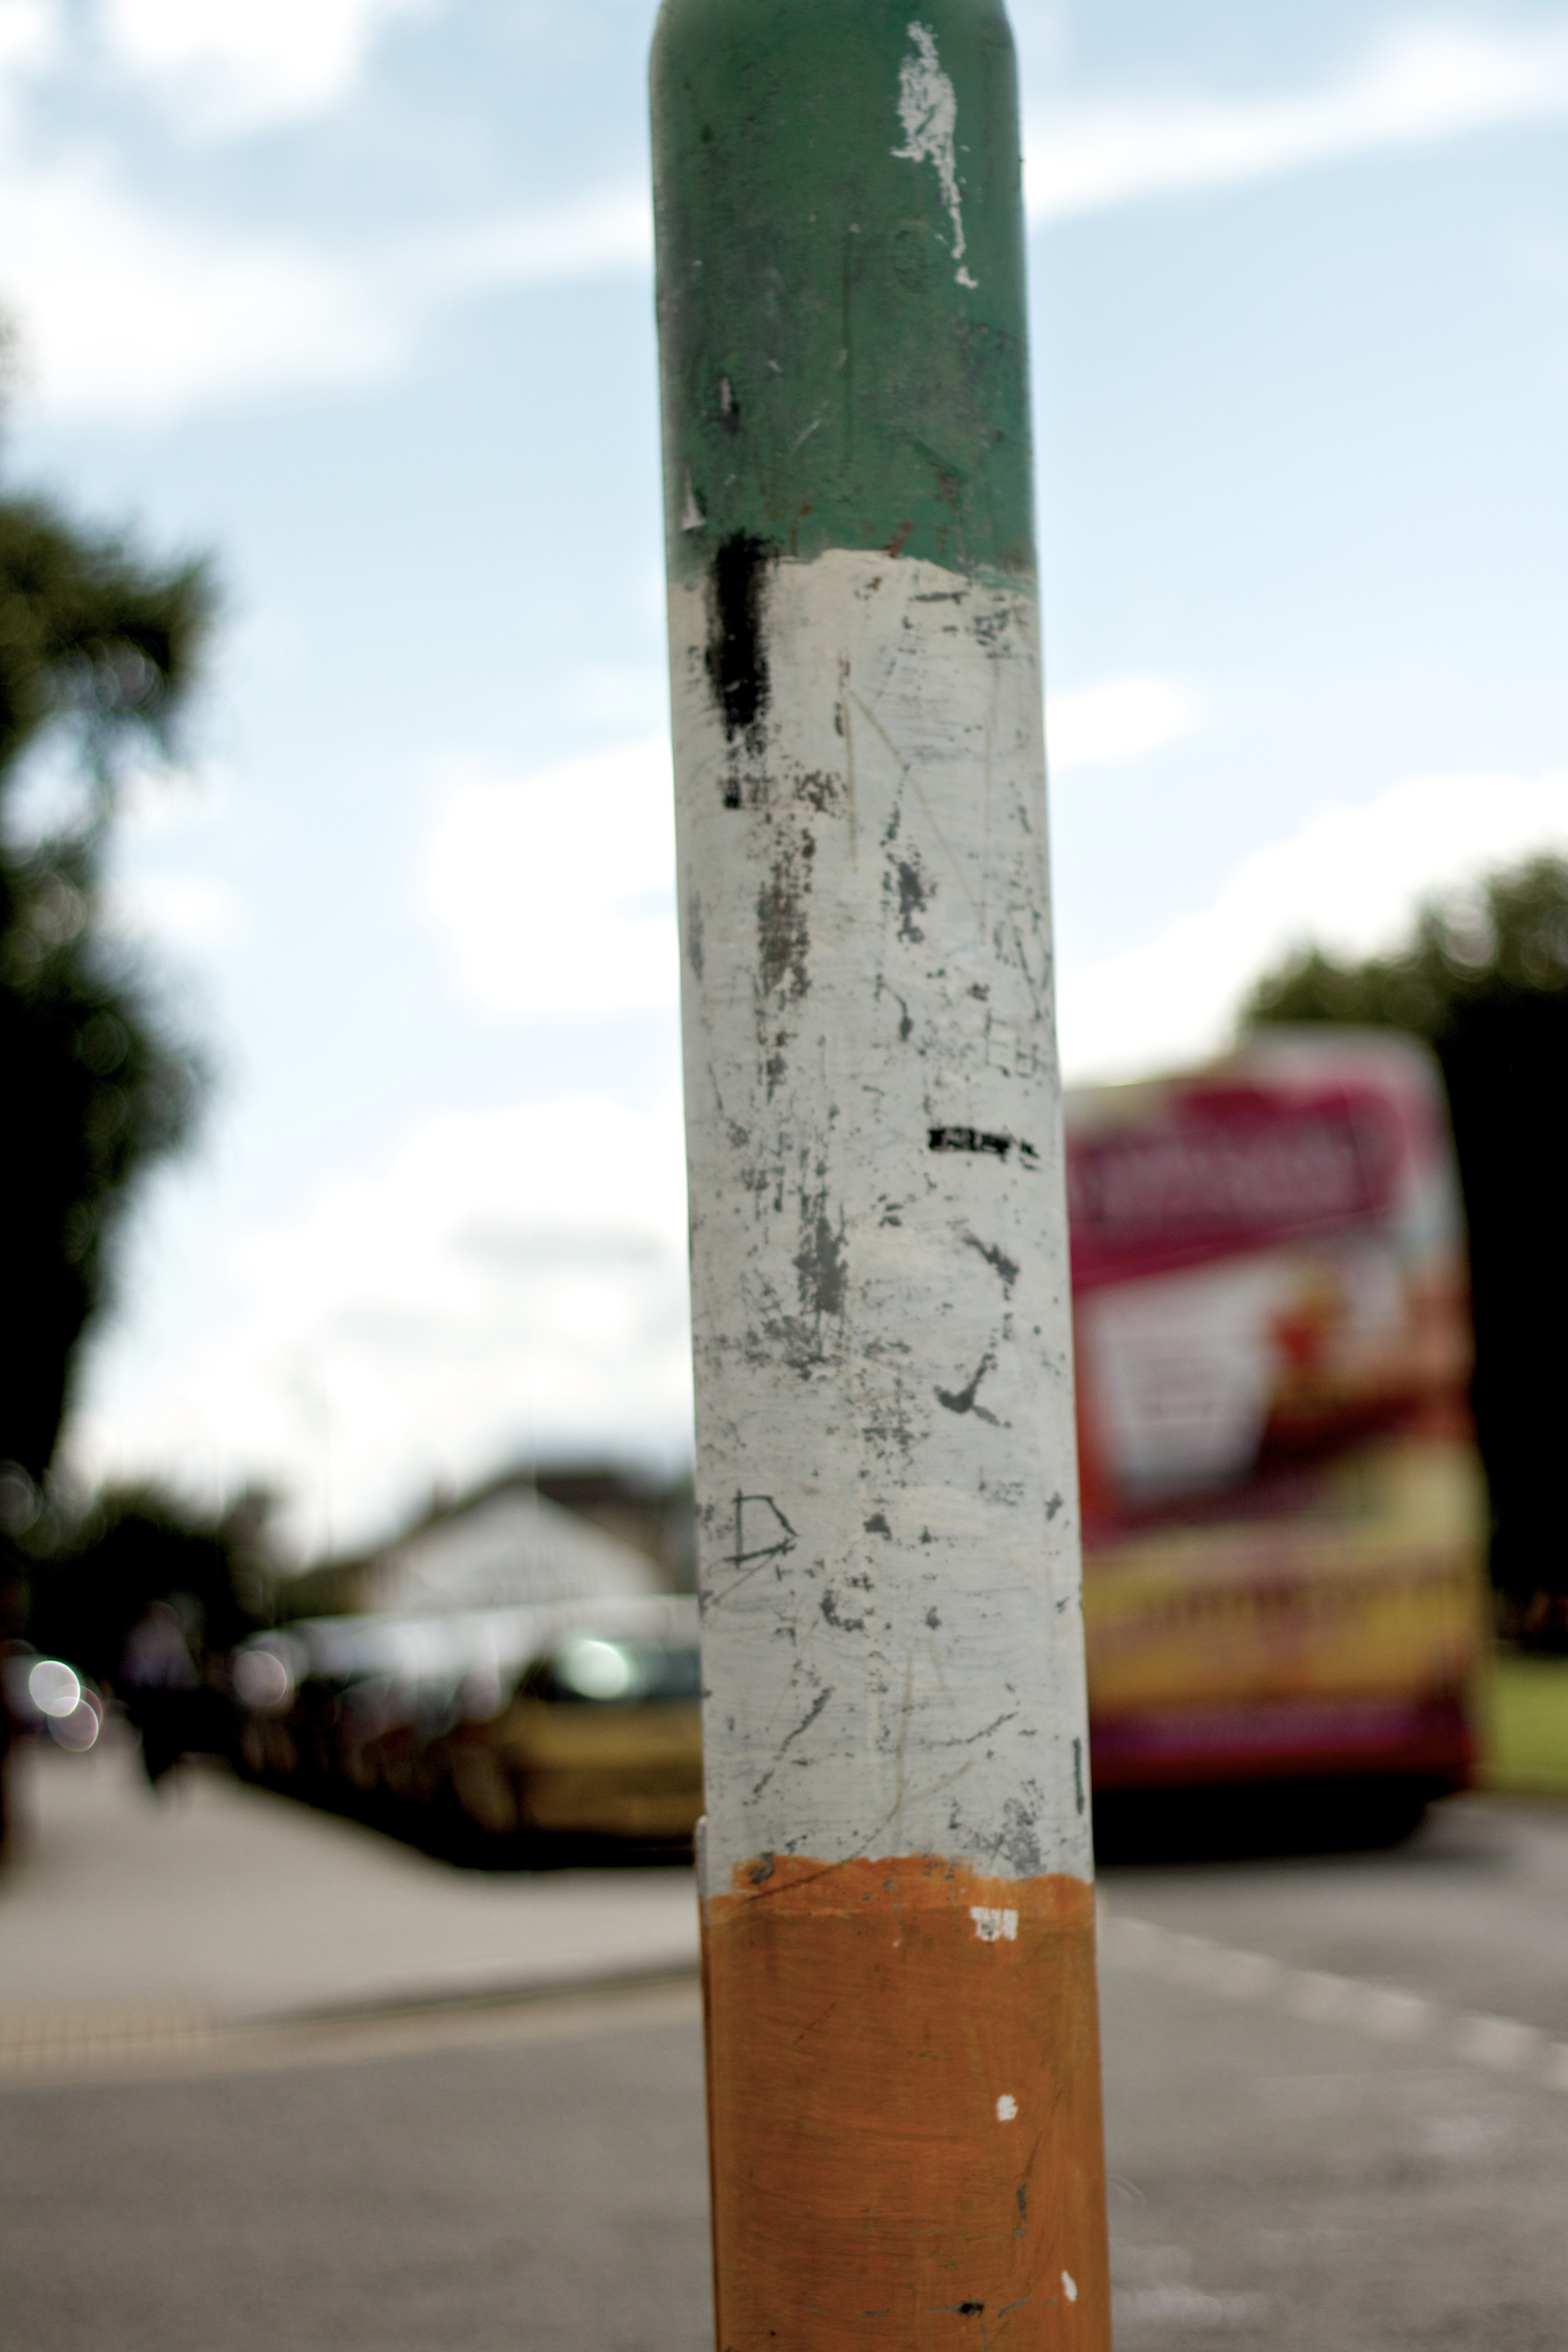 8. A lamp post painted in Nationalist colours.   [f/1.8   1/8000   ISO 200   50mm]